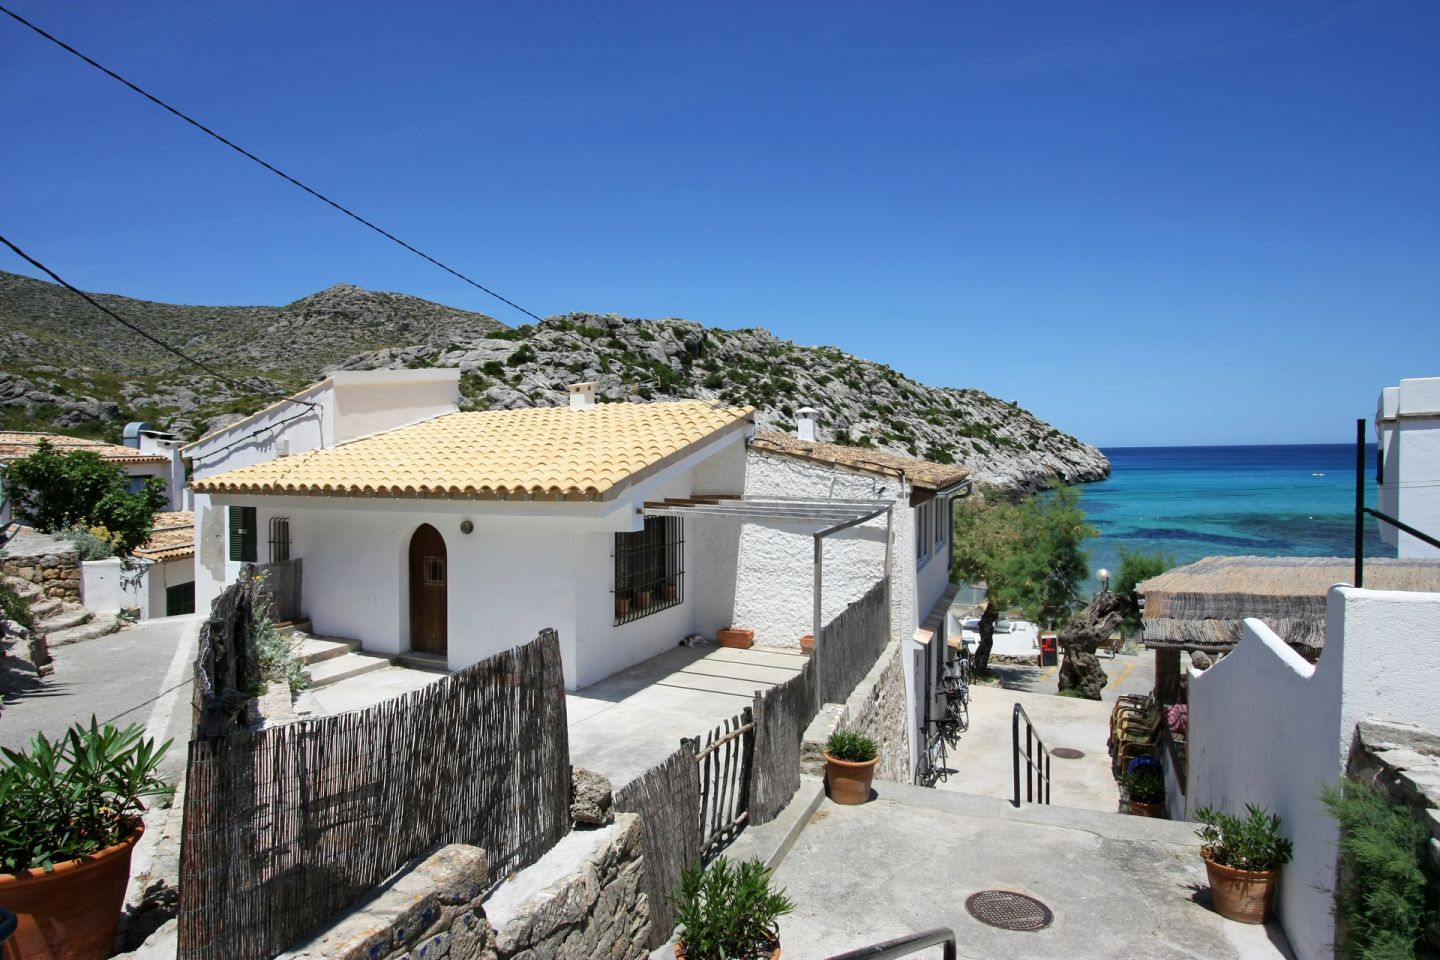 2 Bed Apartment for sale in Cala San Vicente 13